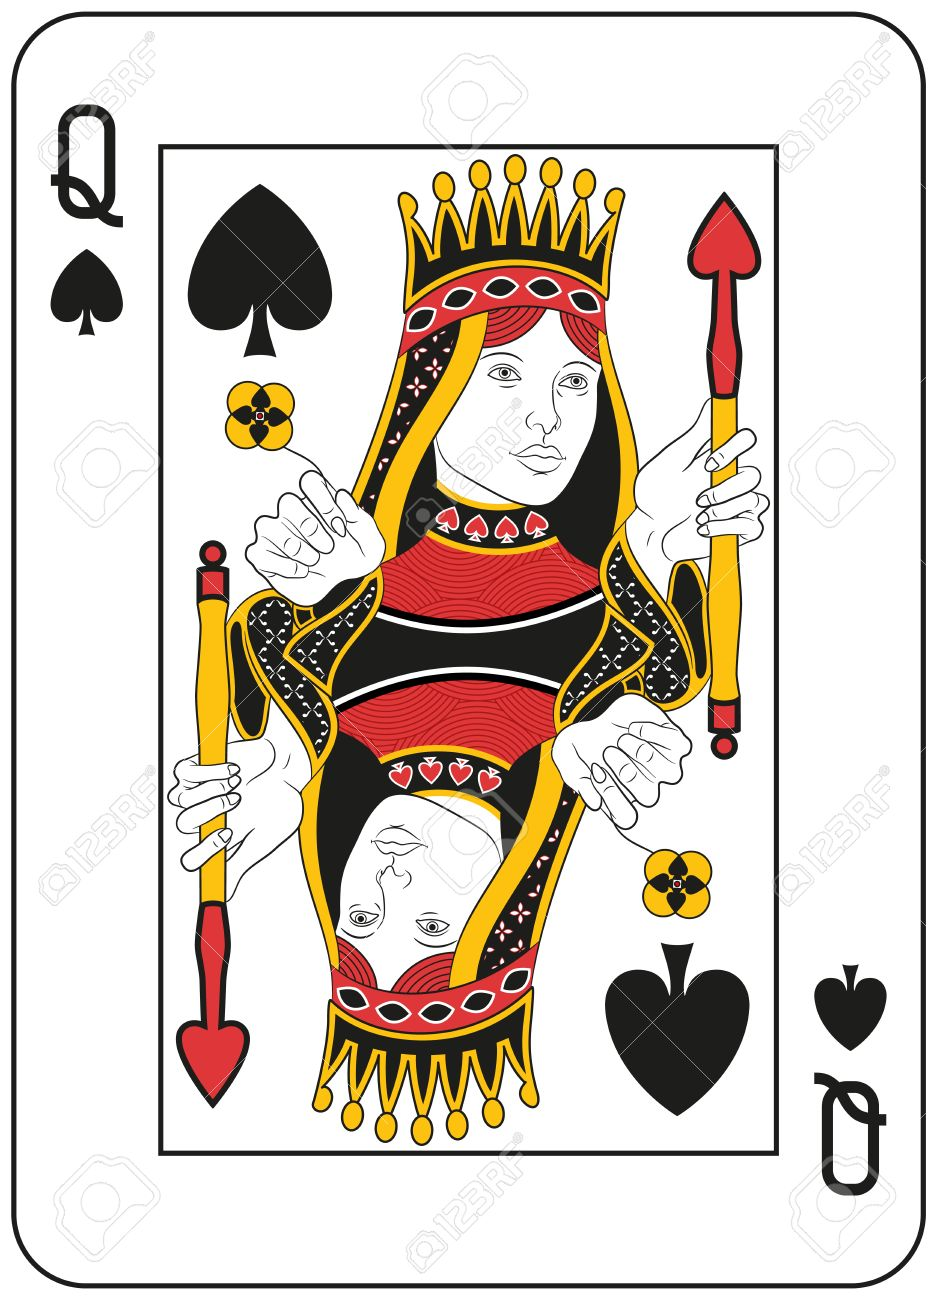 Queen of spades clipart vector library stock Kings And Queens Clipart | Free download best Kings And ... vector library stock